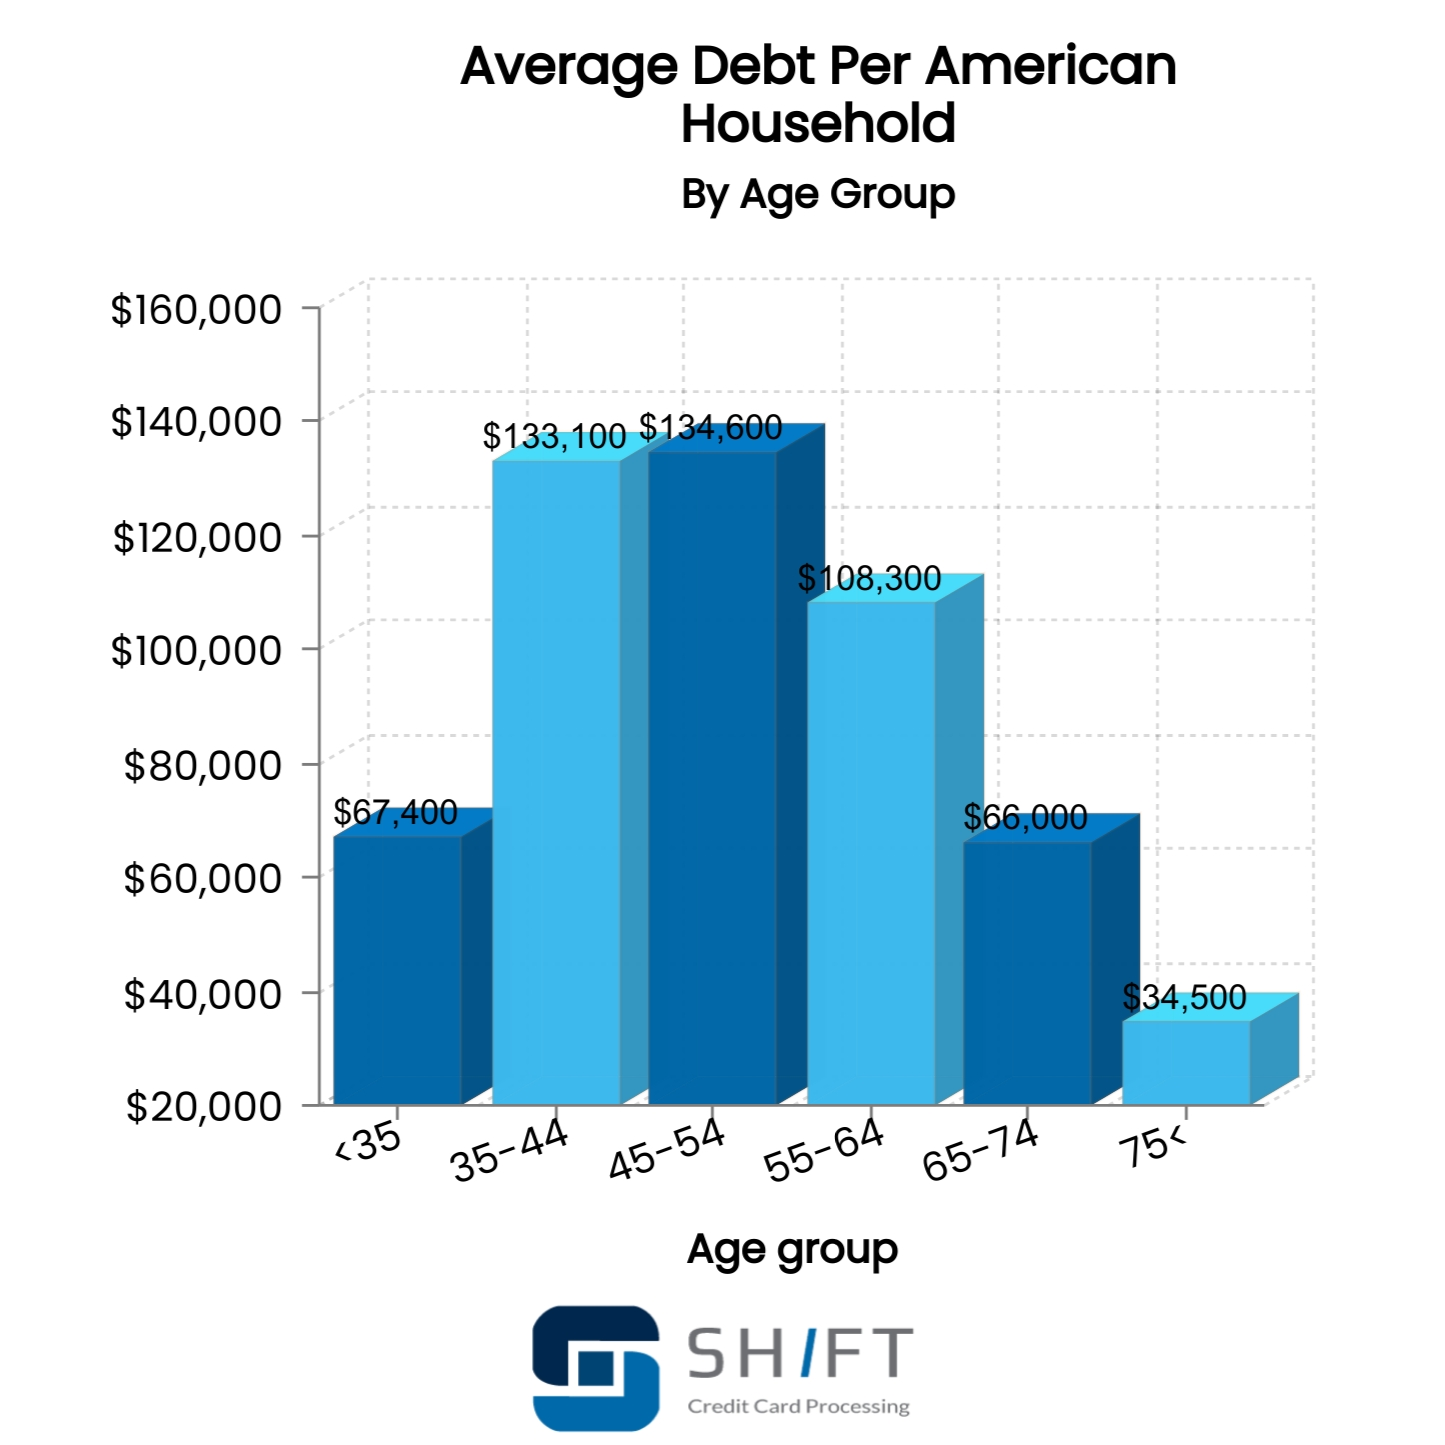 bar graph showing American debt per household by age group